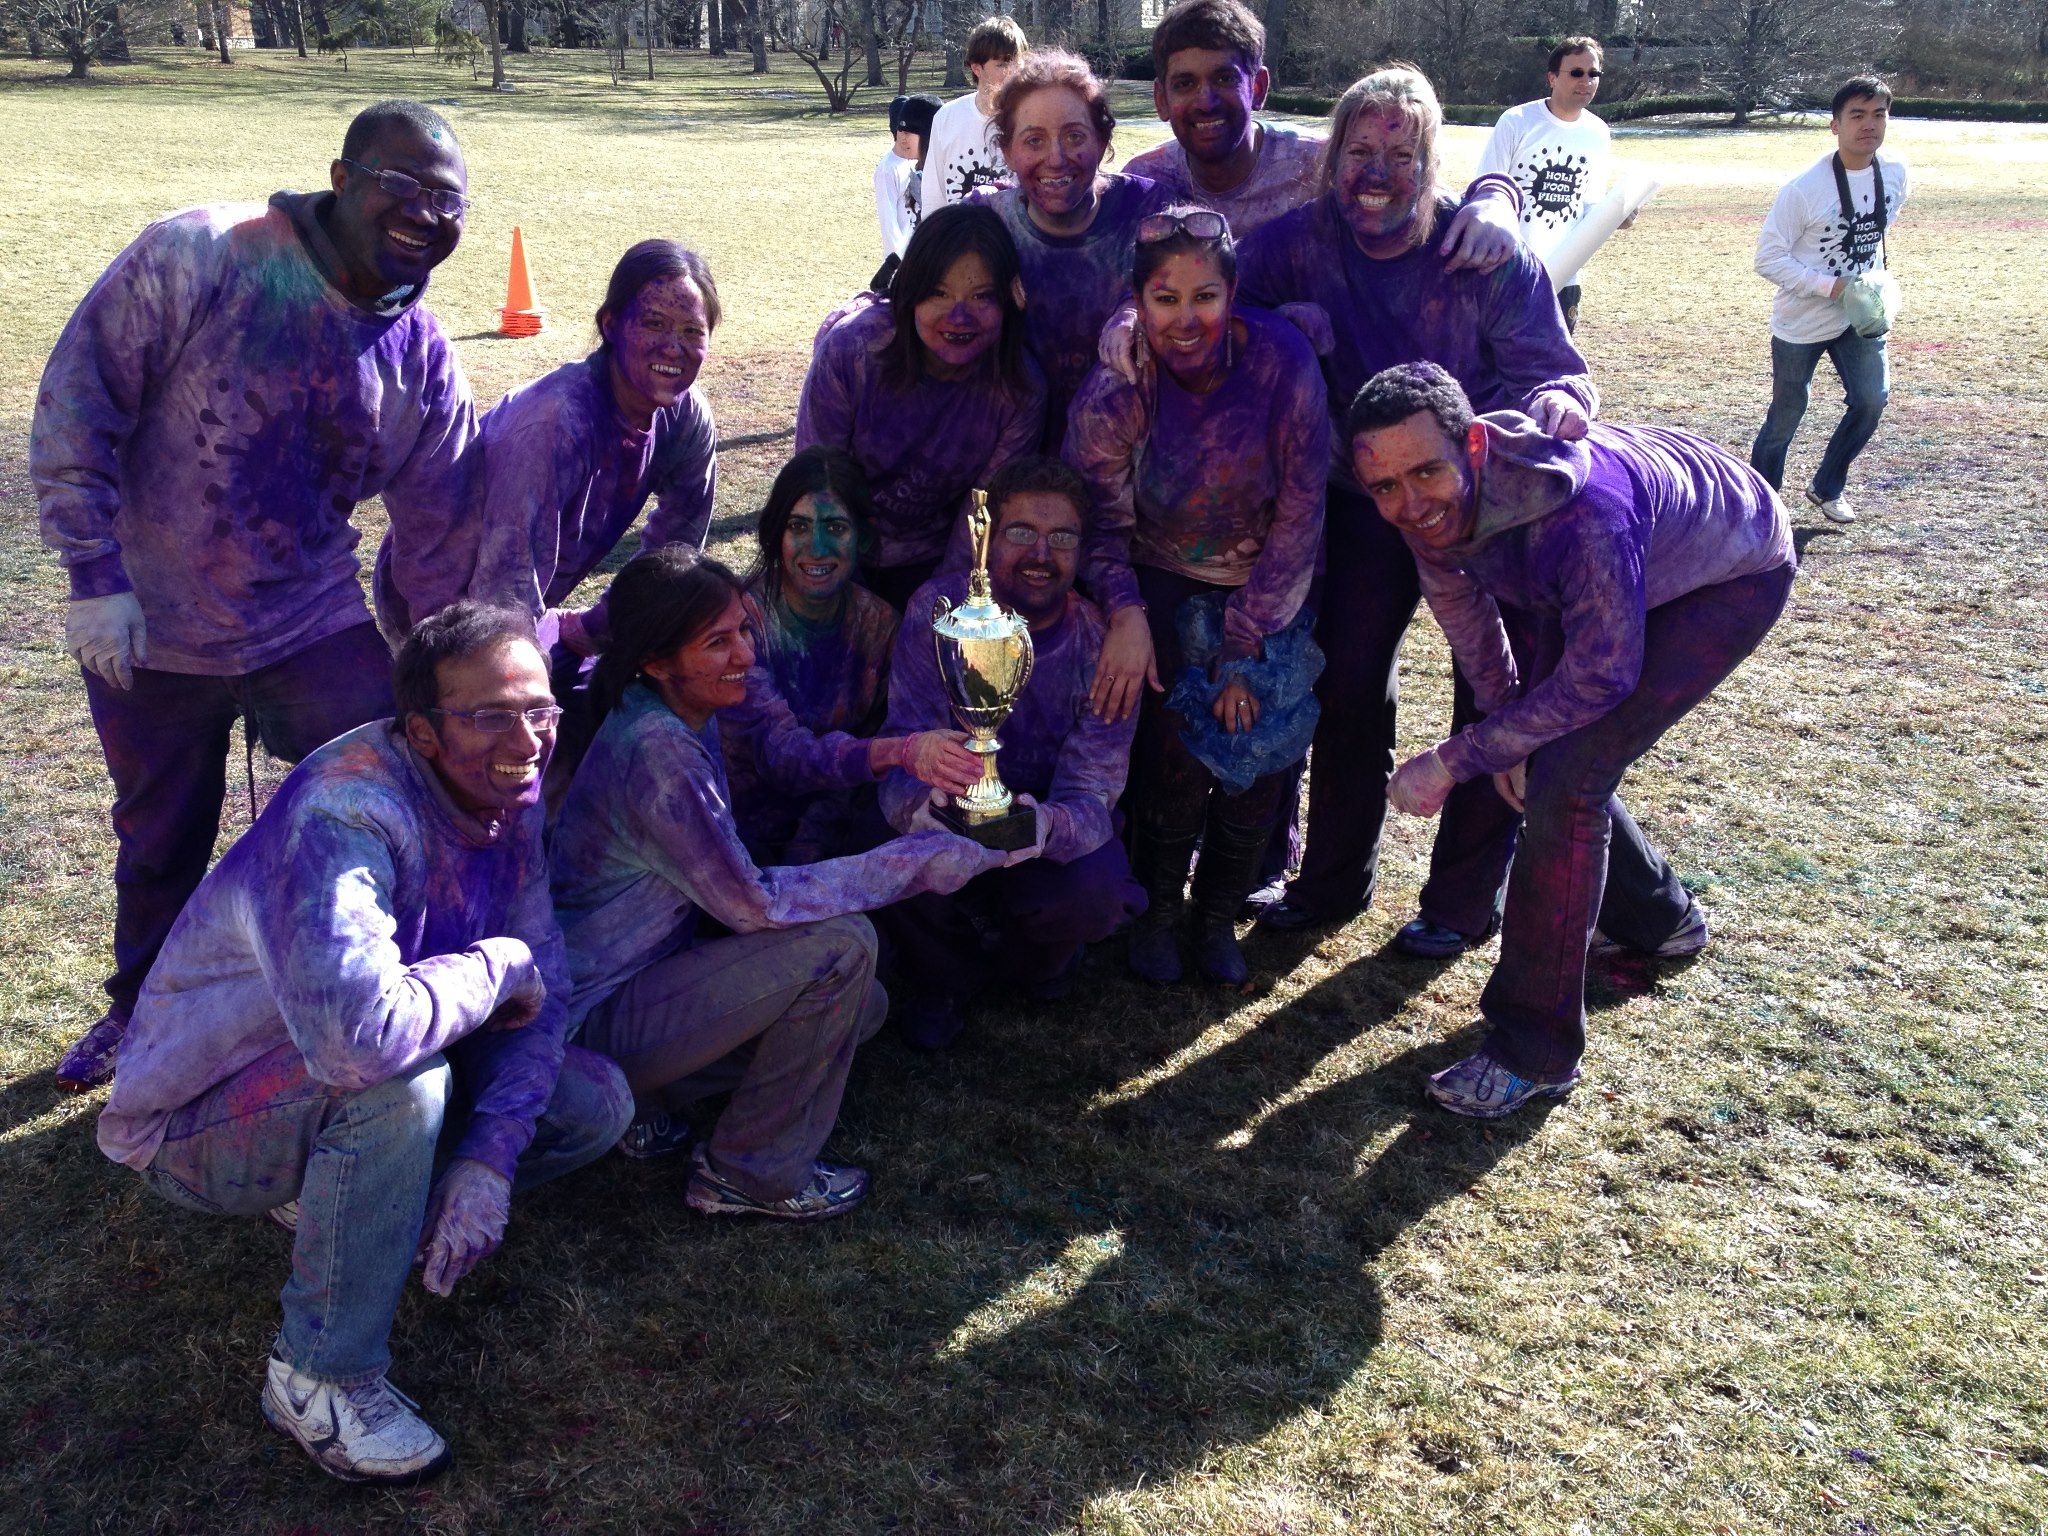 The winning team of the Holi Food fight organized by IBC and Kellogg Cares